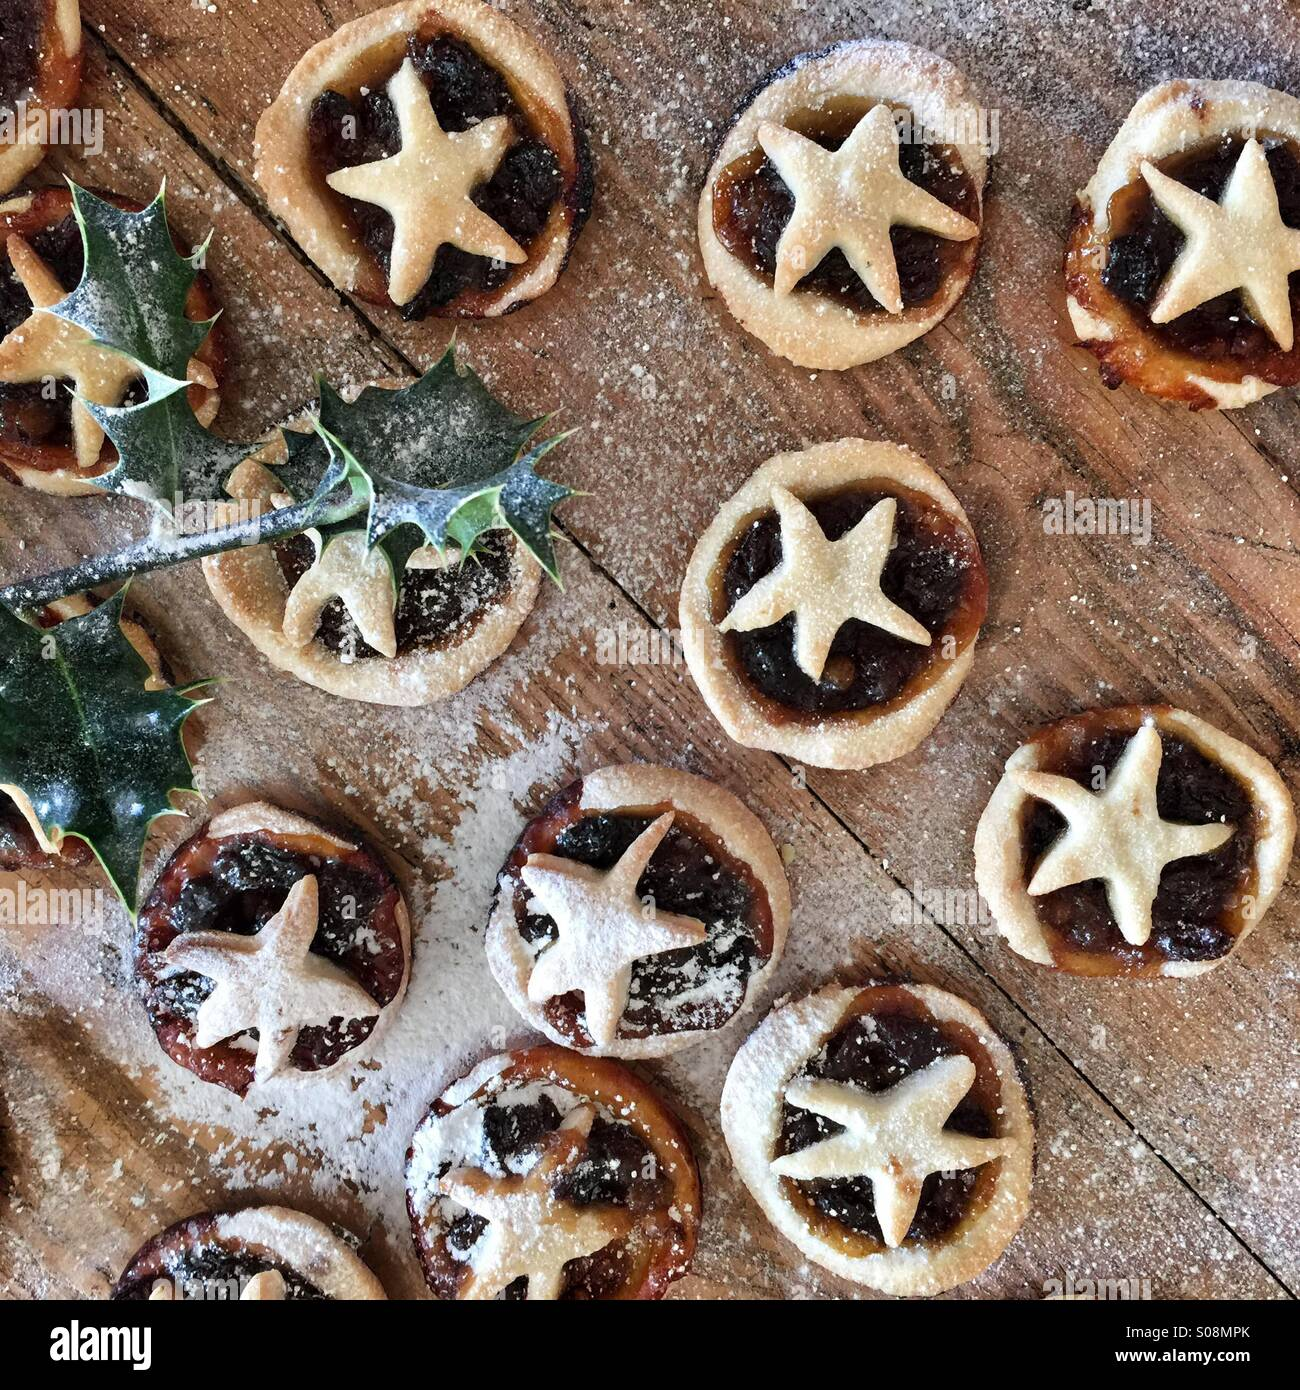 Mince pies at Christmas Stock Photo